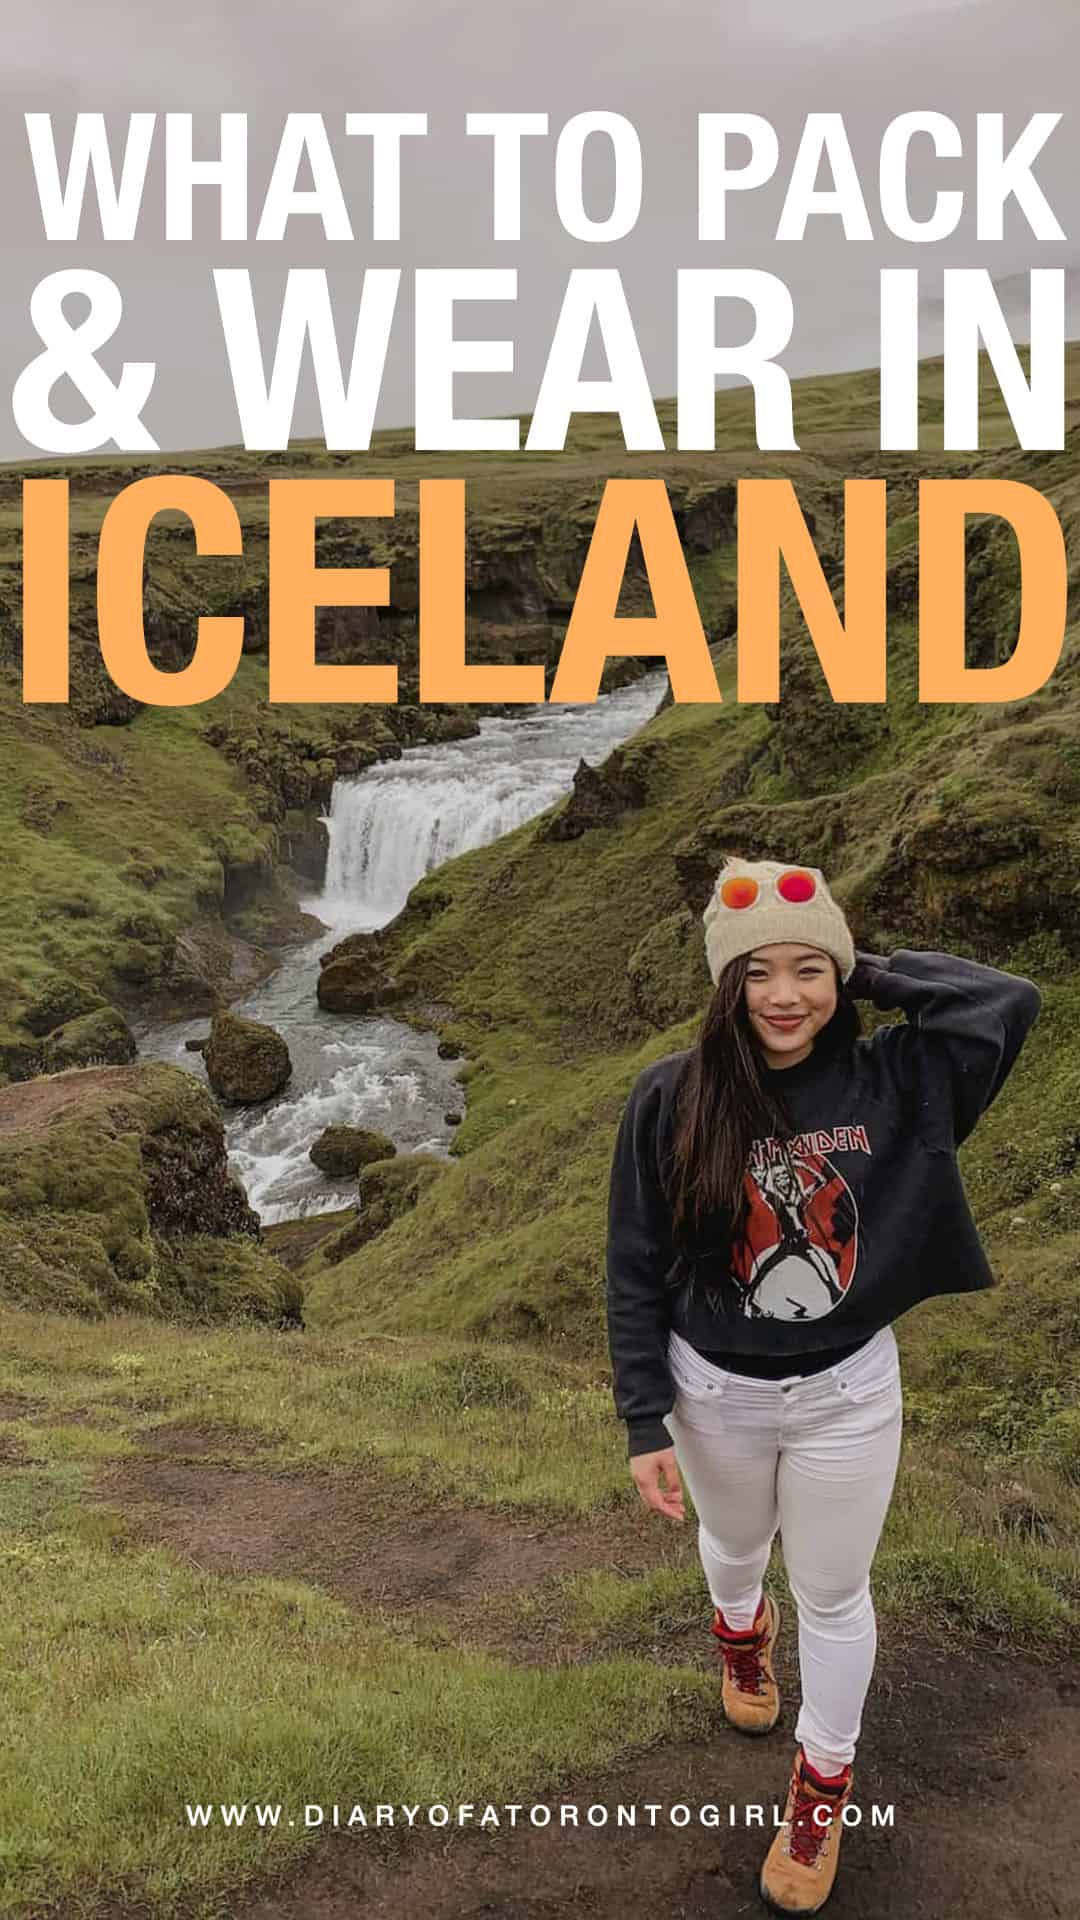 What to pack and wear in Iceland during the summer months! Iceland is cold year-round, so you should be prepared with the right gear and clothing. Here's your ultimate packing guide, whether you're visiting for 7 days or 2 weeks!